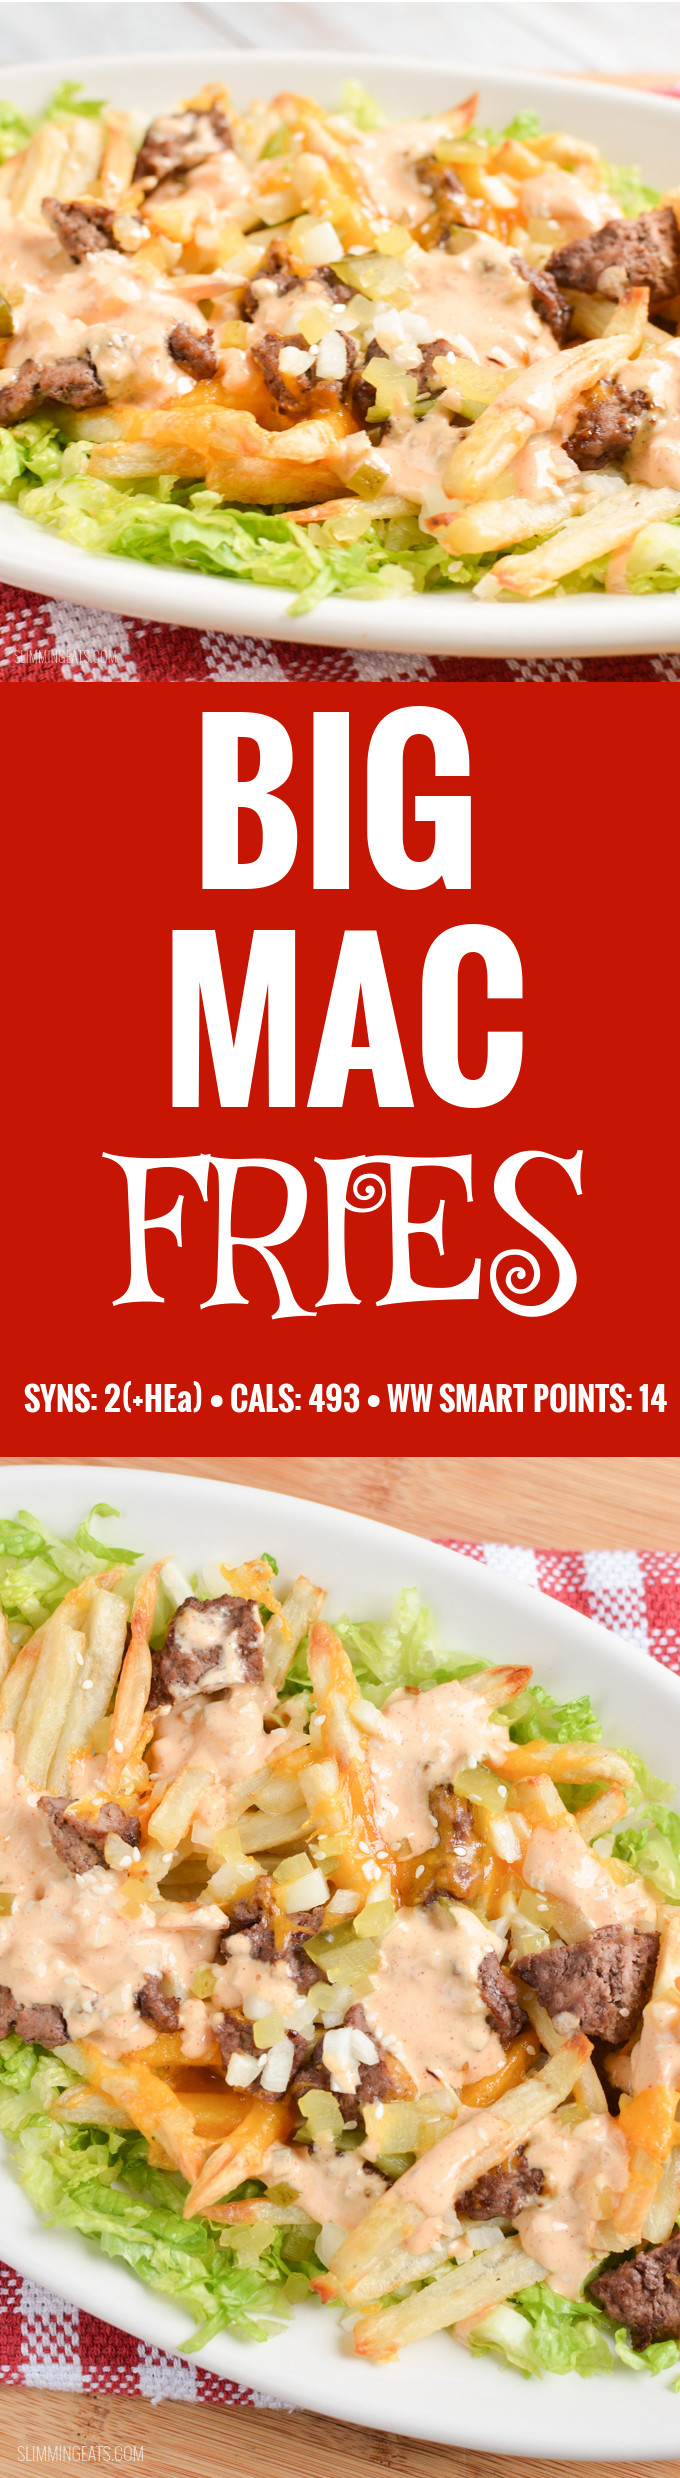 Slimming Eats Big Mac Fries - gluten free, Slimming World and Weight Watchers friendly